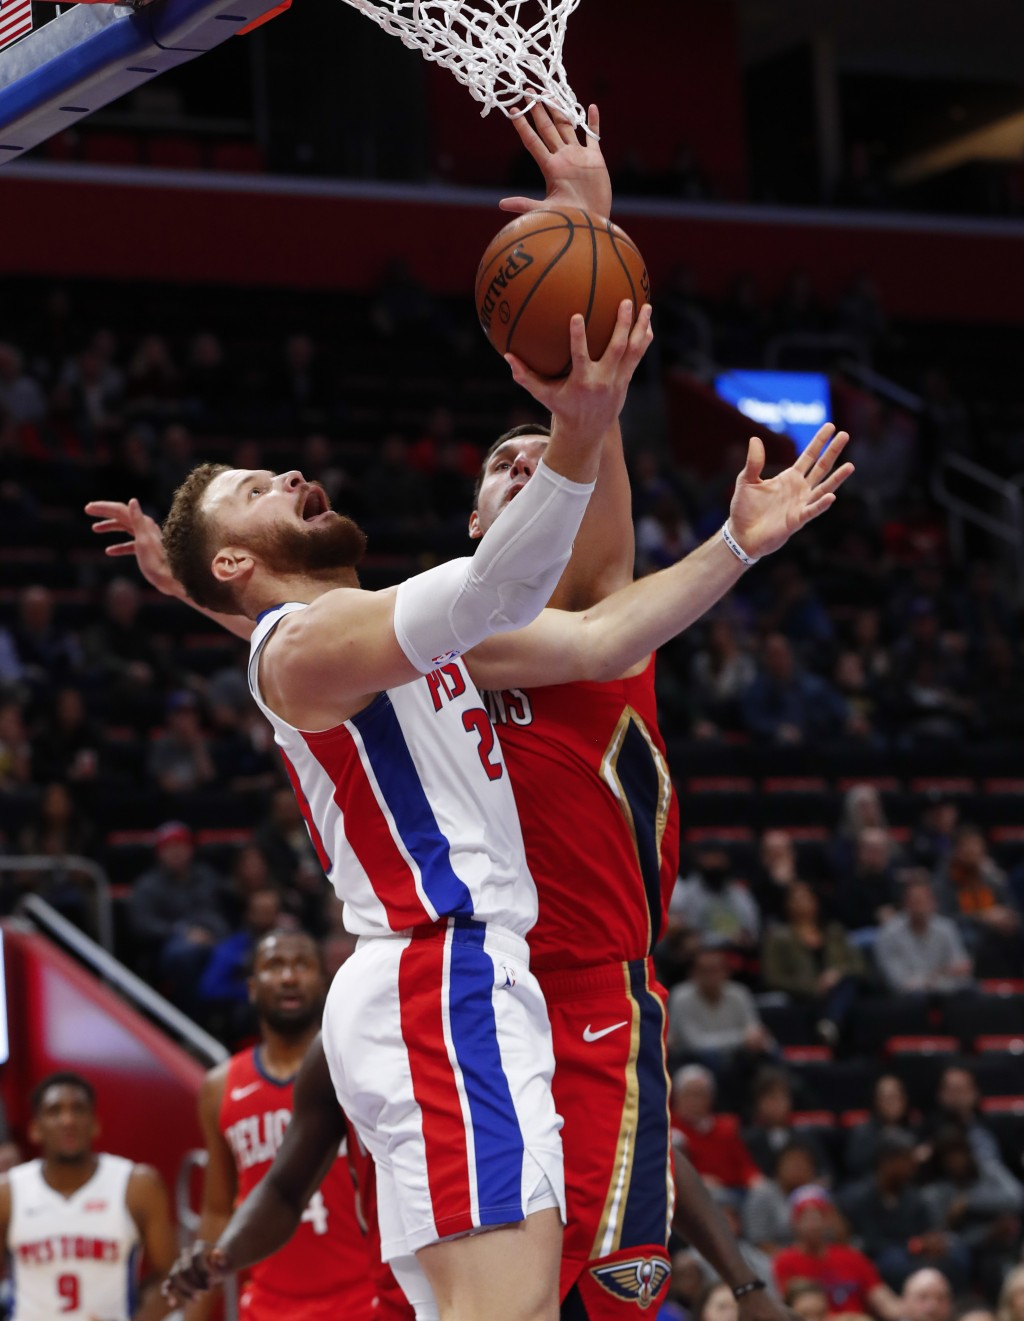 Detroit Pistons forward Blake Griffin (23) drives on New Orleans Pelicans forward Nikola Mirotic (3) in the first half of an NBA basketball game in De...